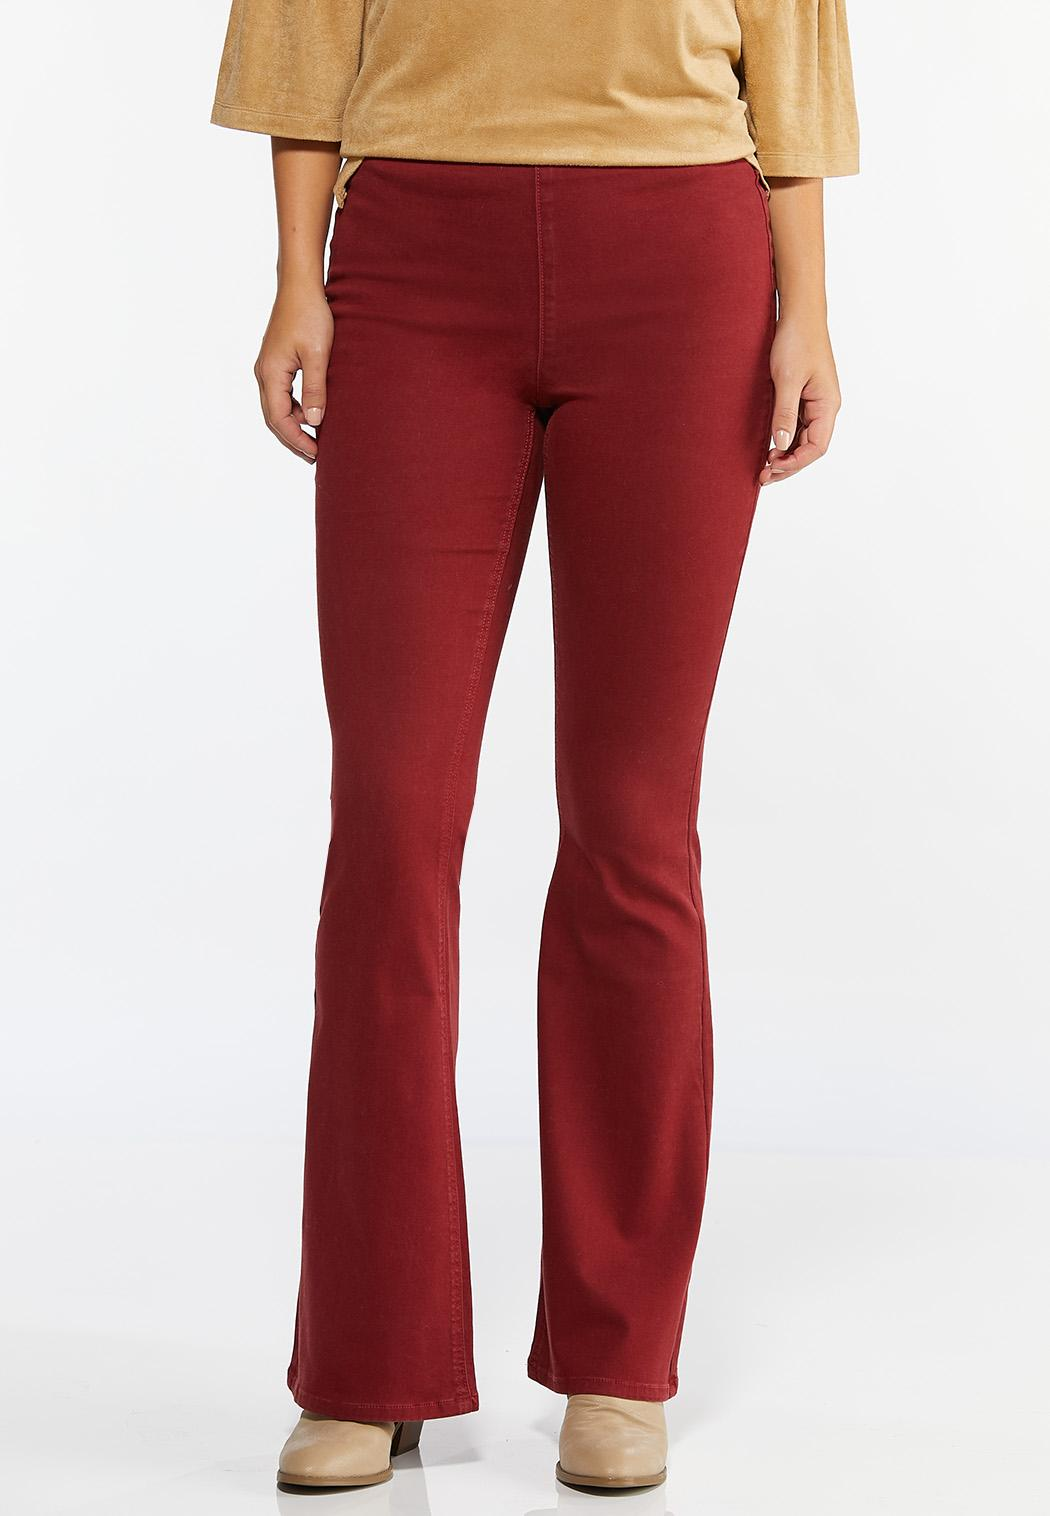 Red Flare Jeans